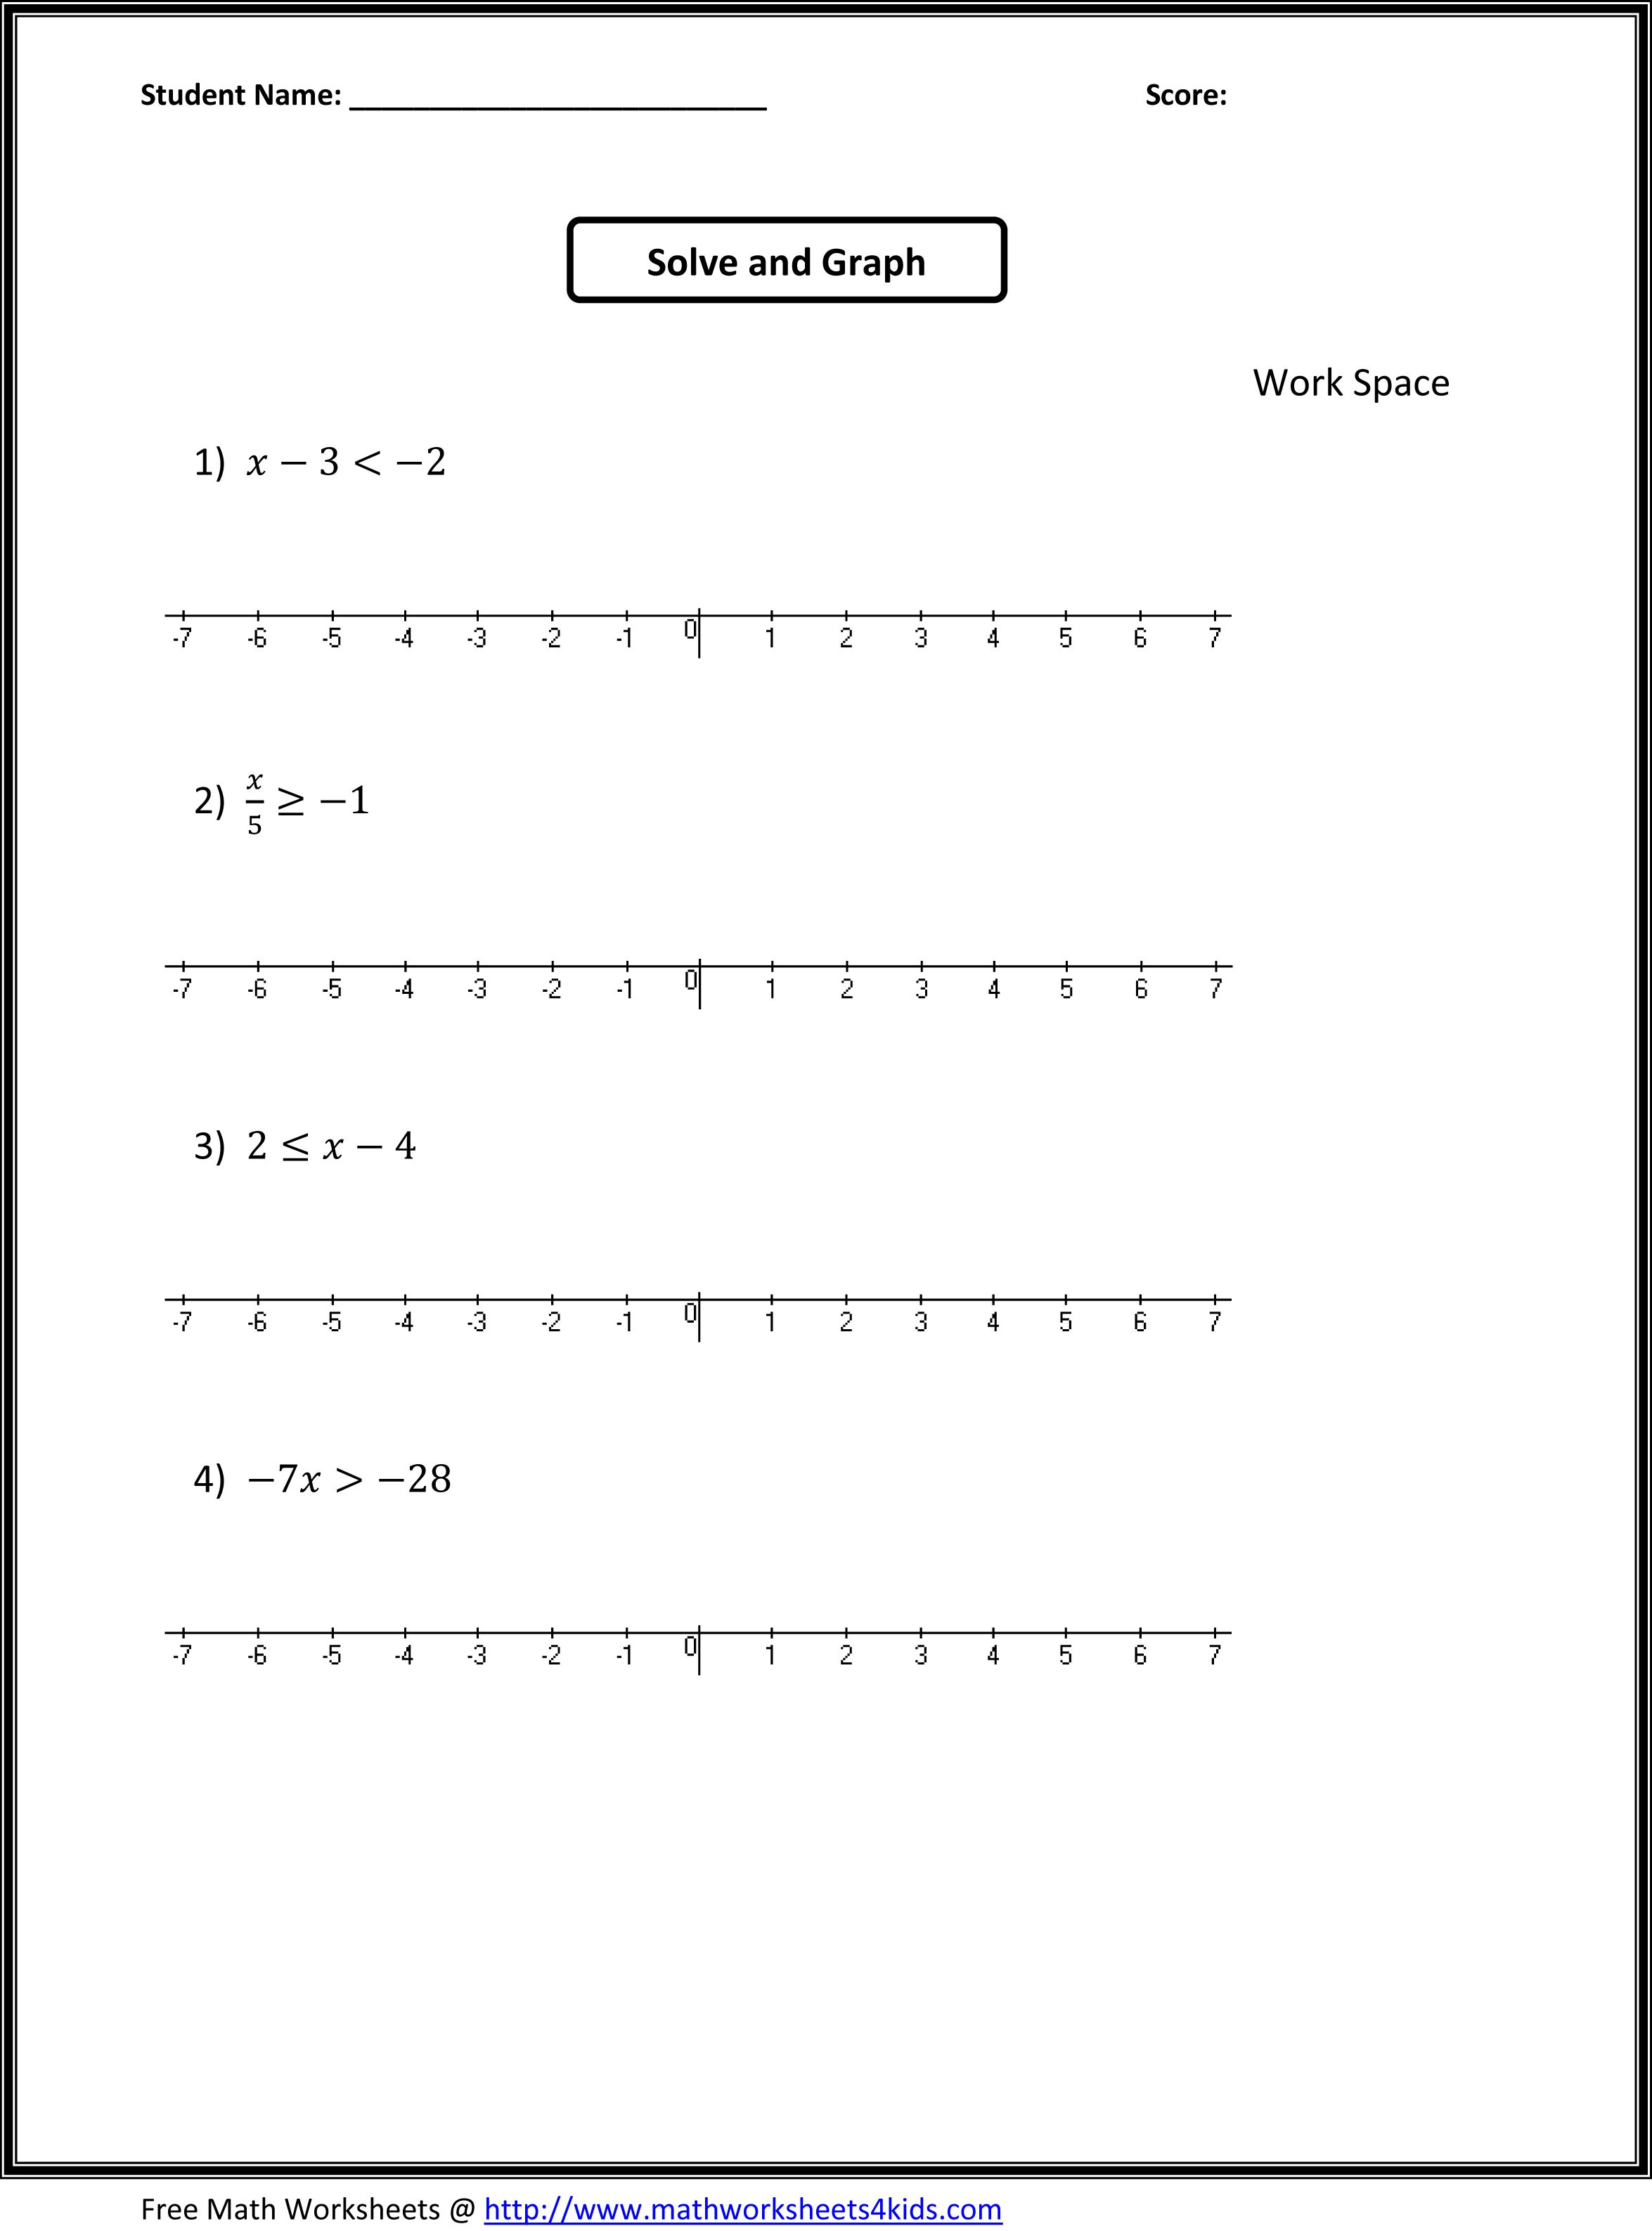 Printables Solving Inequalities Worksheet solving two step inequalities worksheet precommunity printables worksheets 1000 images about on pinterest word problems 7th grade